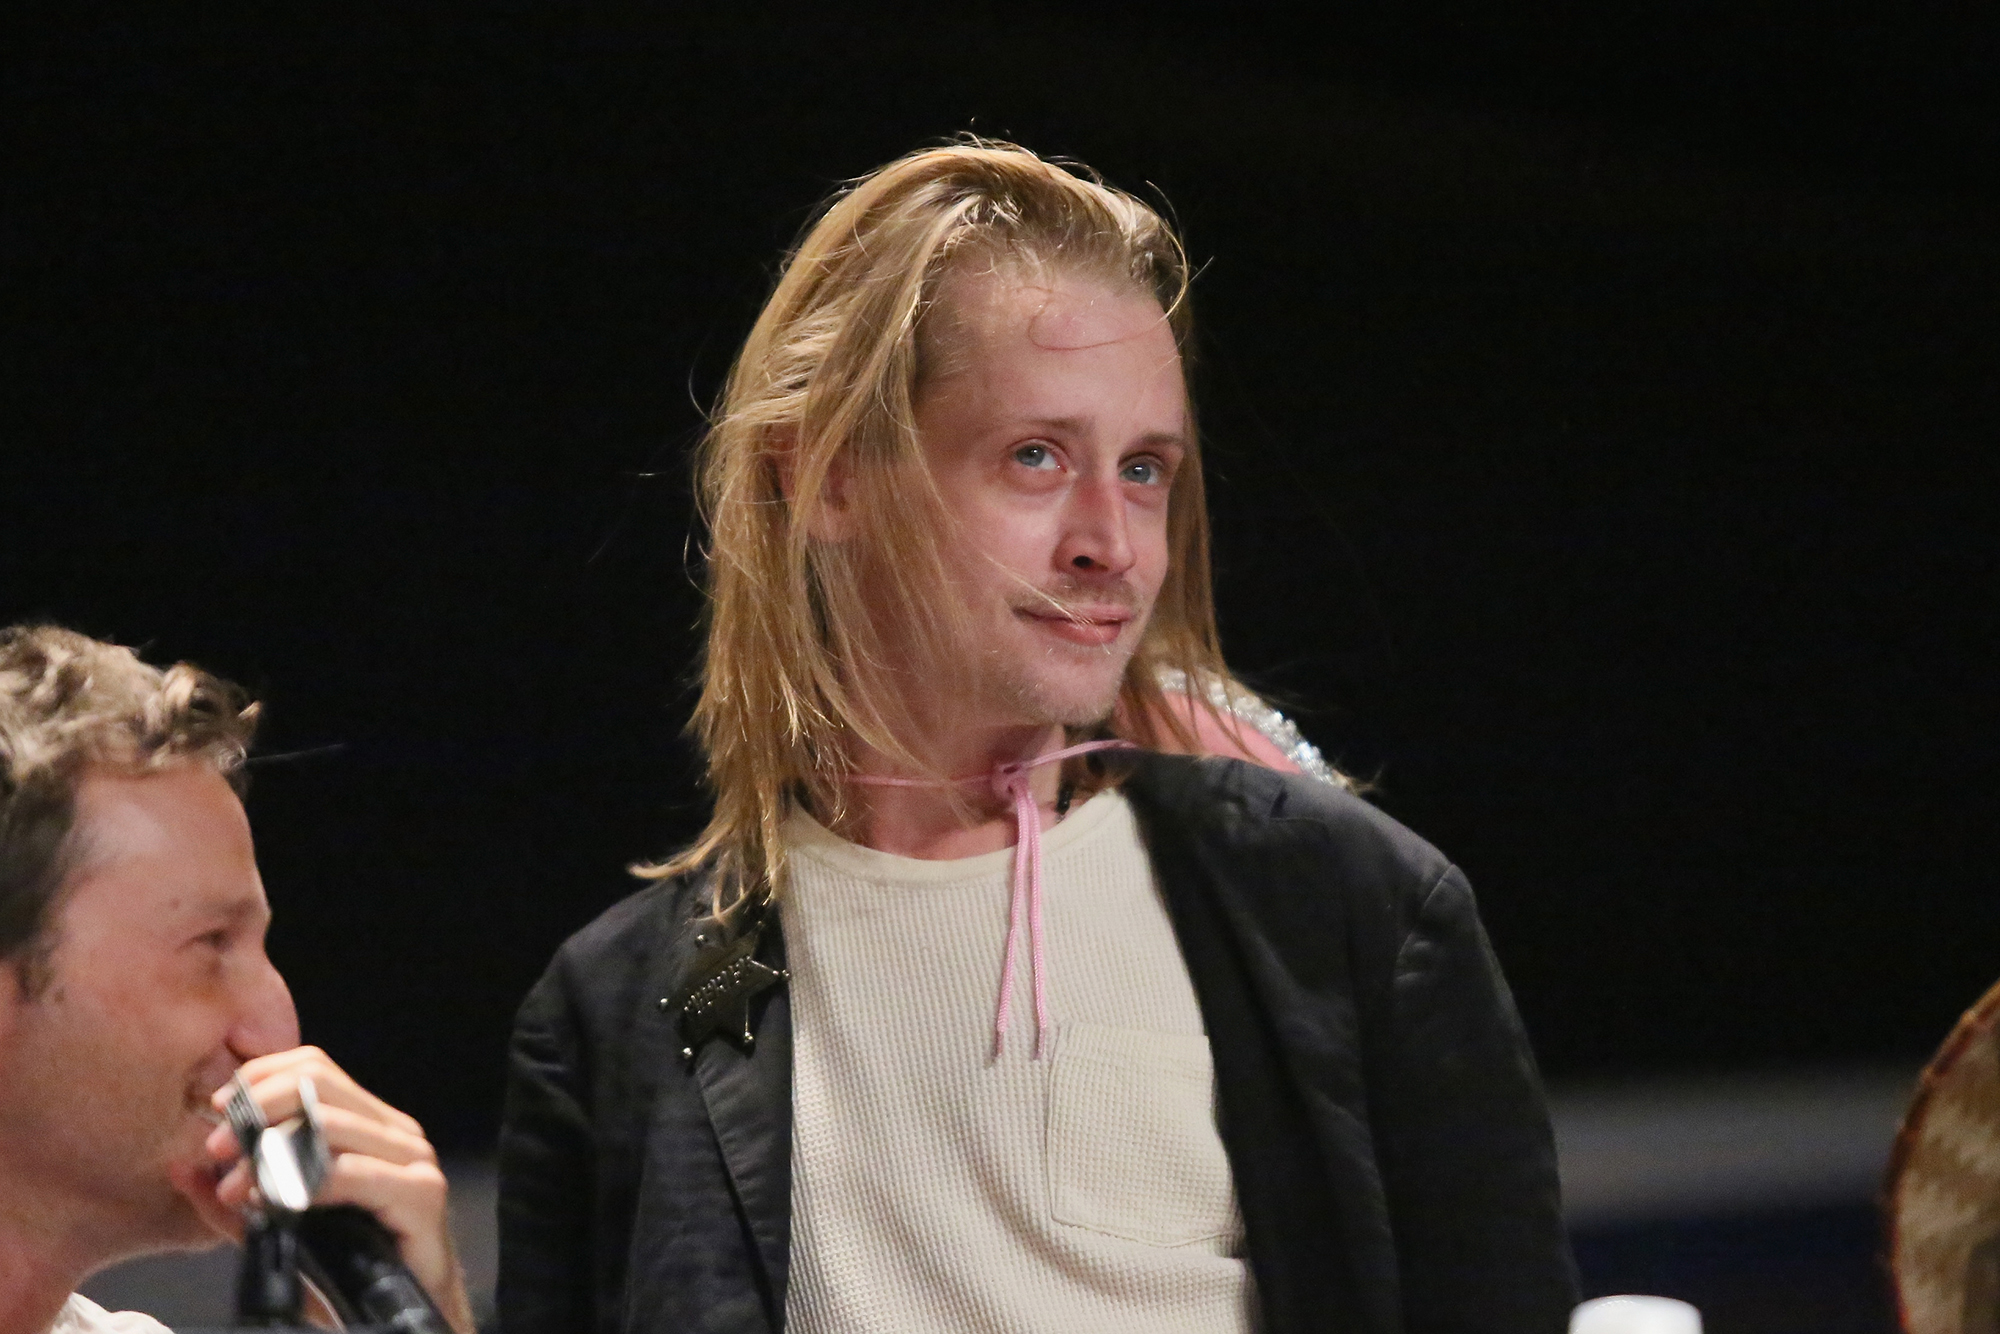 Macaulay Culkin attends The Adult Swim RobotChicken Panel At New York Comic Con 2014 on October 10, 2014 (Photo by Astrid Stawiarz/WireImage for Turner Networks)